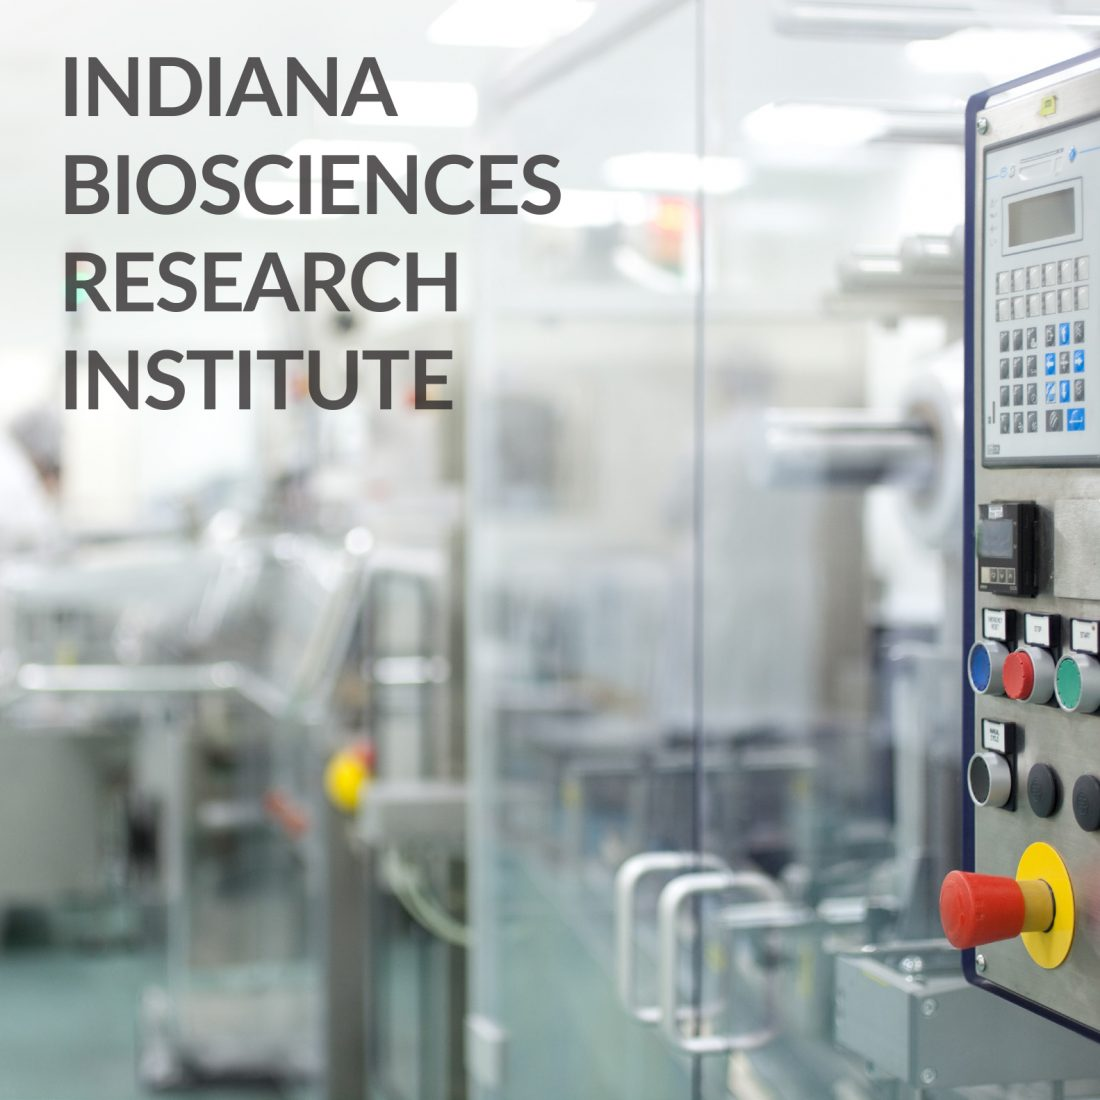 IBRI, Dow Agrosciences, Lilly Partner on Molecular Safety Database